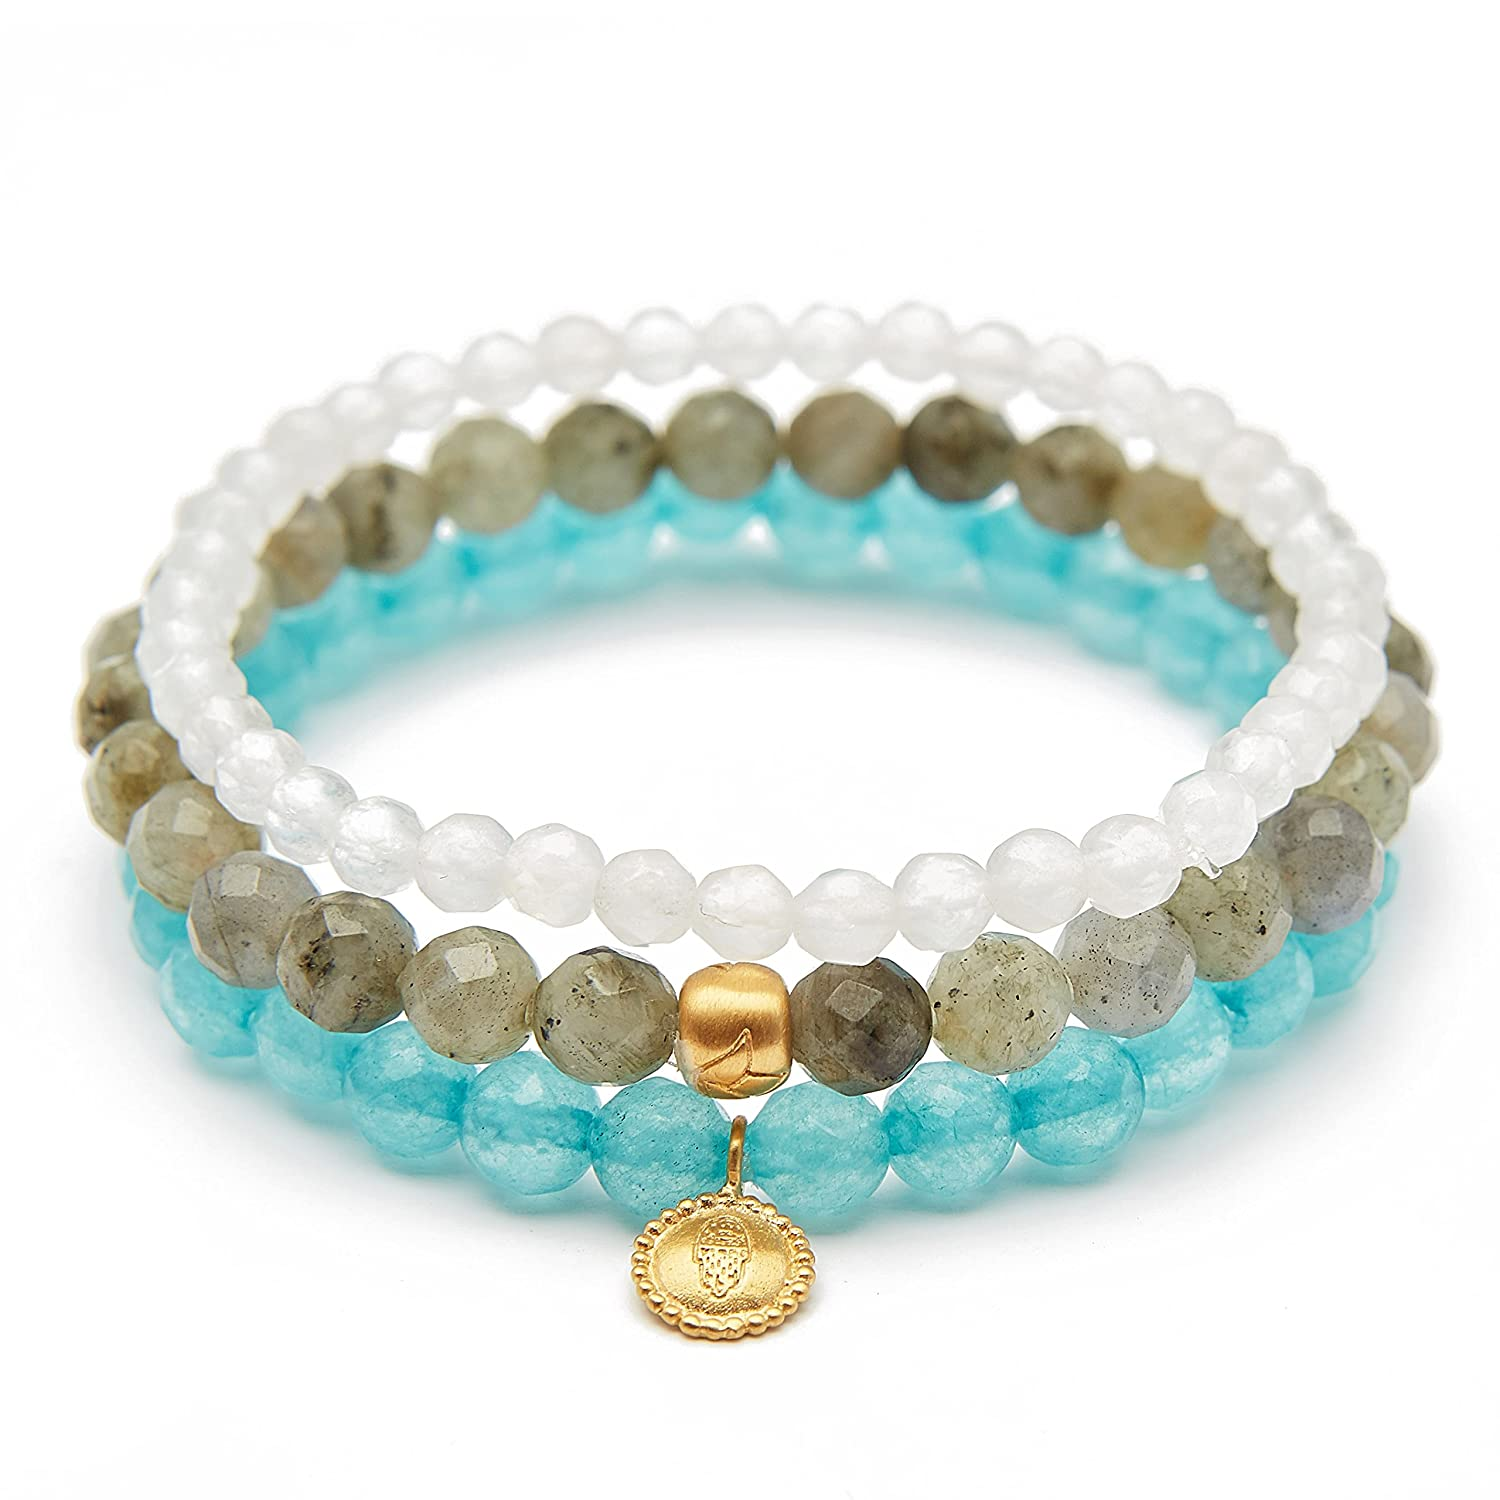 Satya Jewelry Women's Labradorite Angelite White Jade Gold Hamsa Lotus Stretch Bracelet Set, Multi, One Size BG9-SET-86